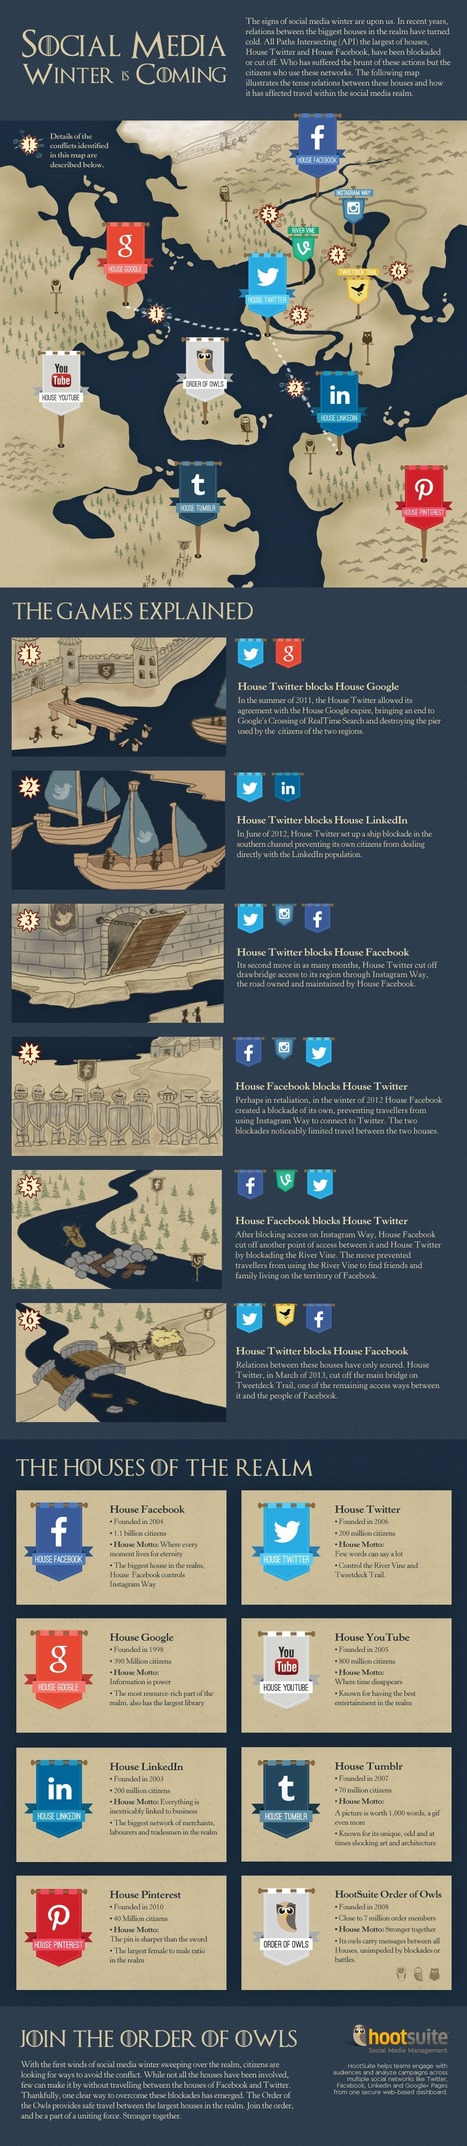 Social Media Wars Told in 'Game of Thrones' Style [INFOGRAPHIC] | Service Systems | Scoop.it